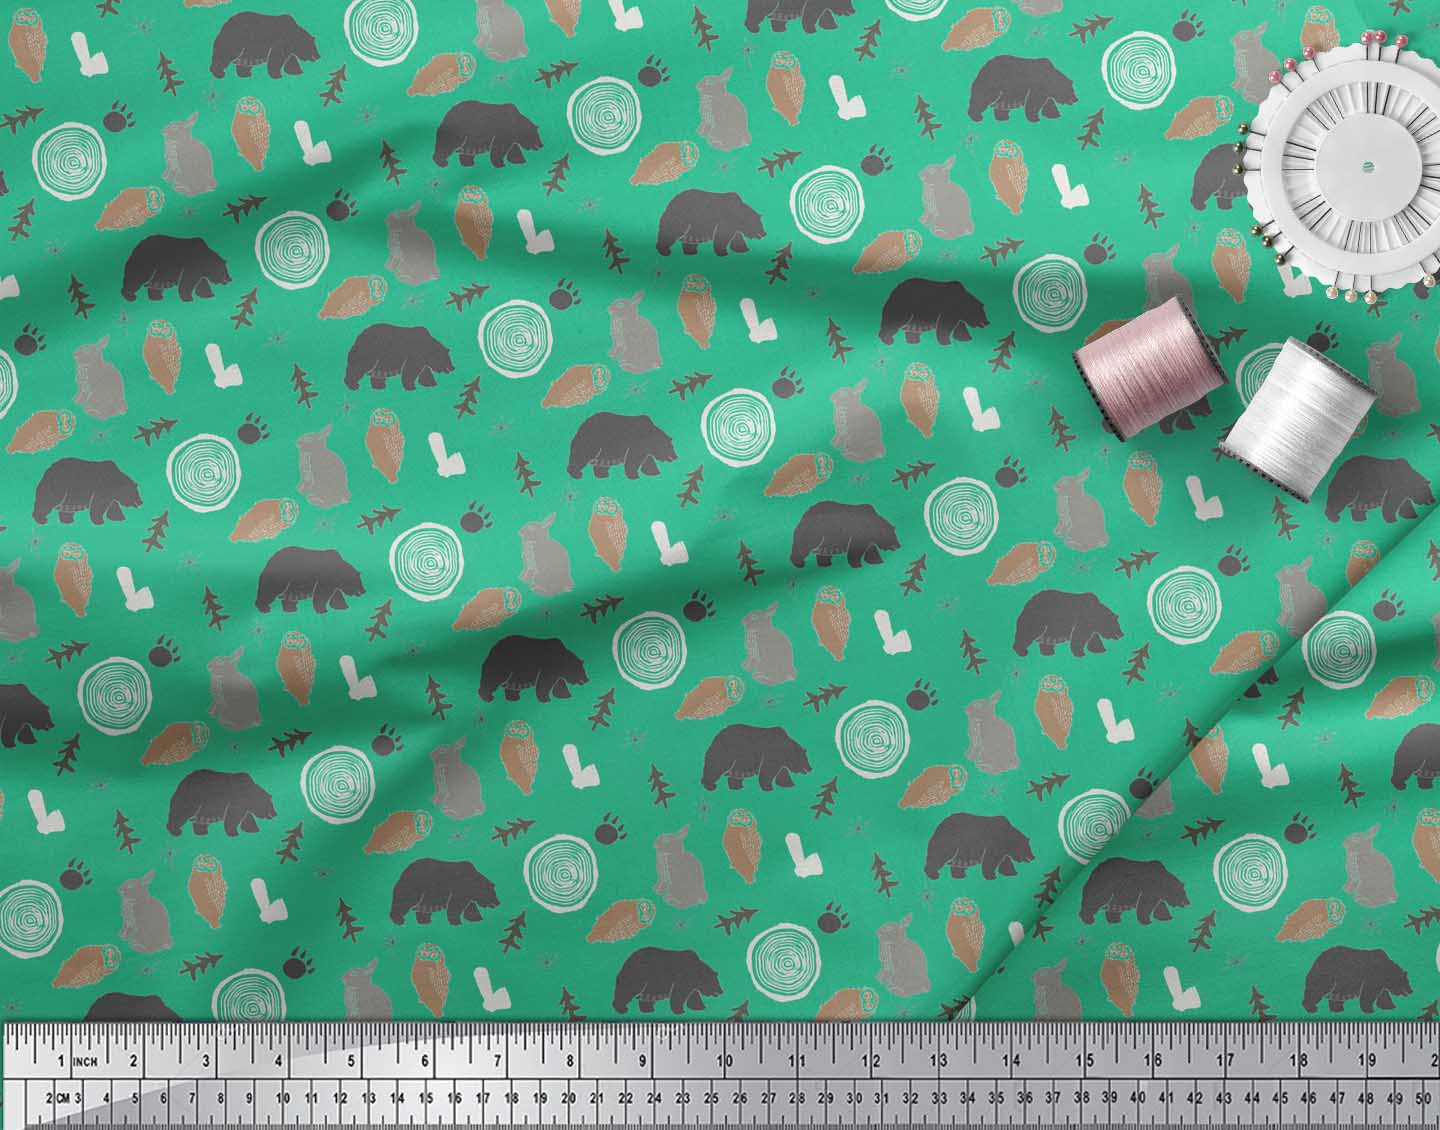 Soimoi-Green-Cotton-Poplin-Fabric-Wild-Life-Animal-Decor-Fabric-yOV thumbnail 4